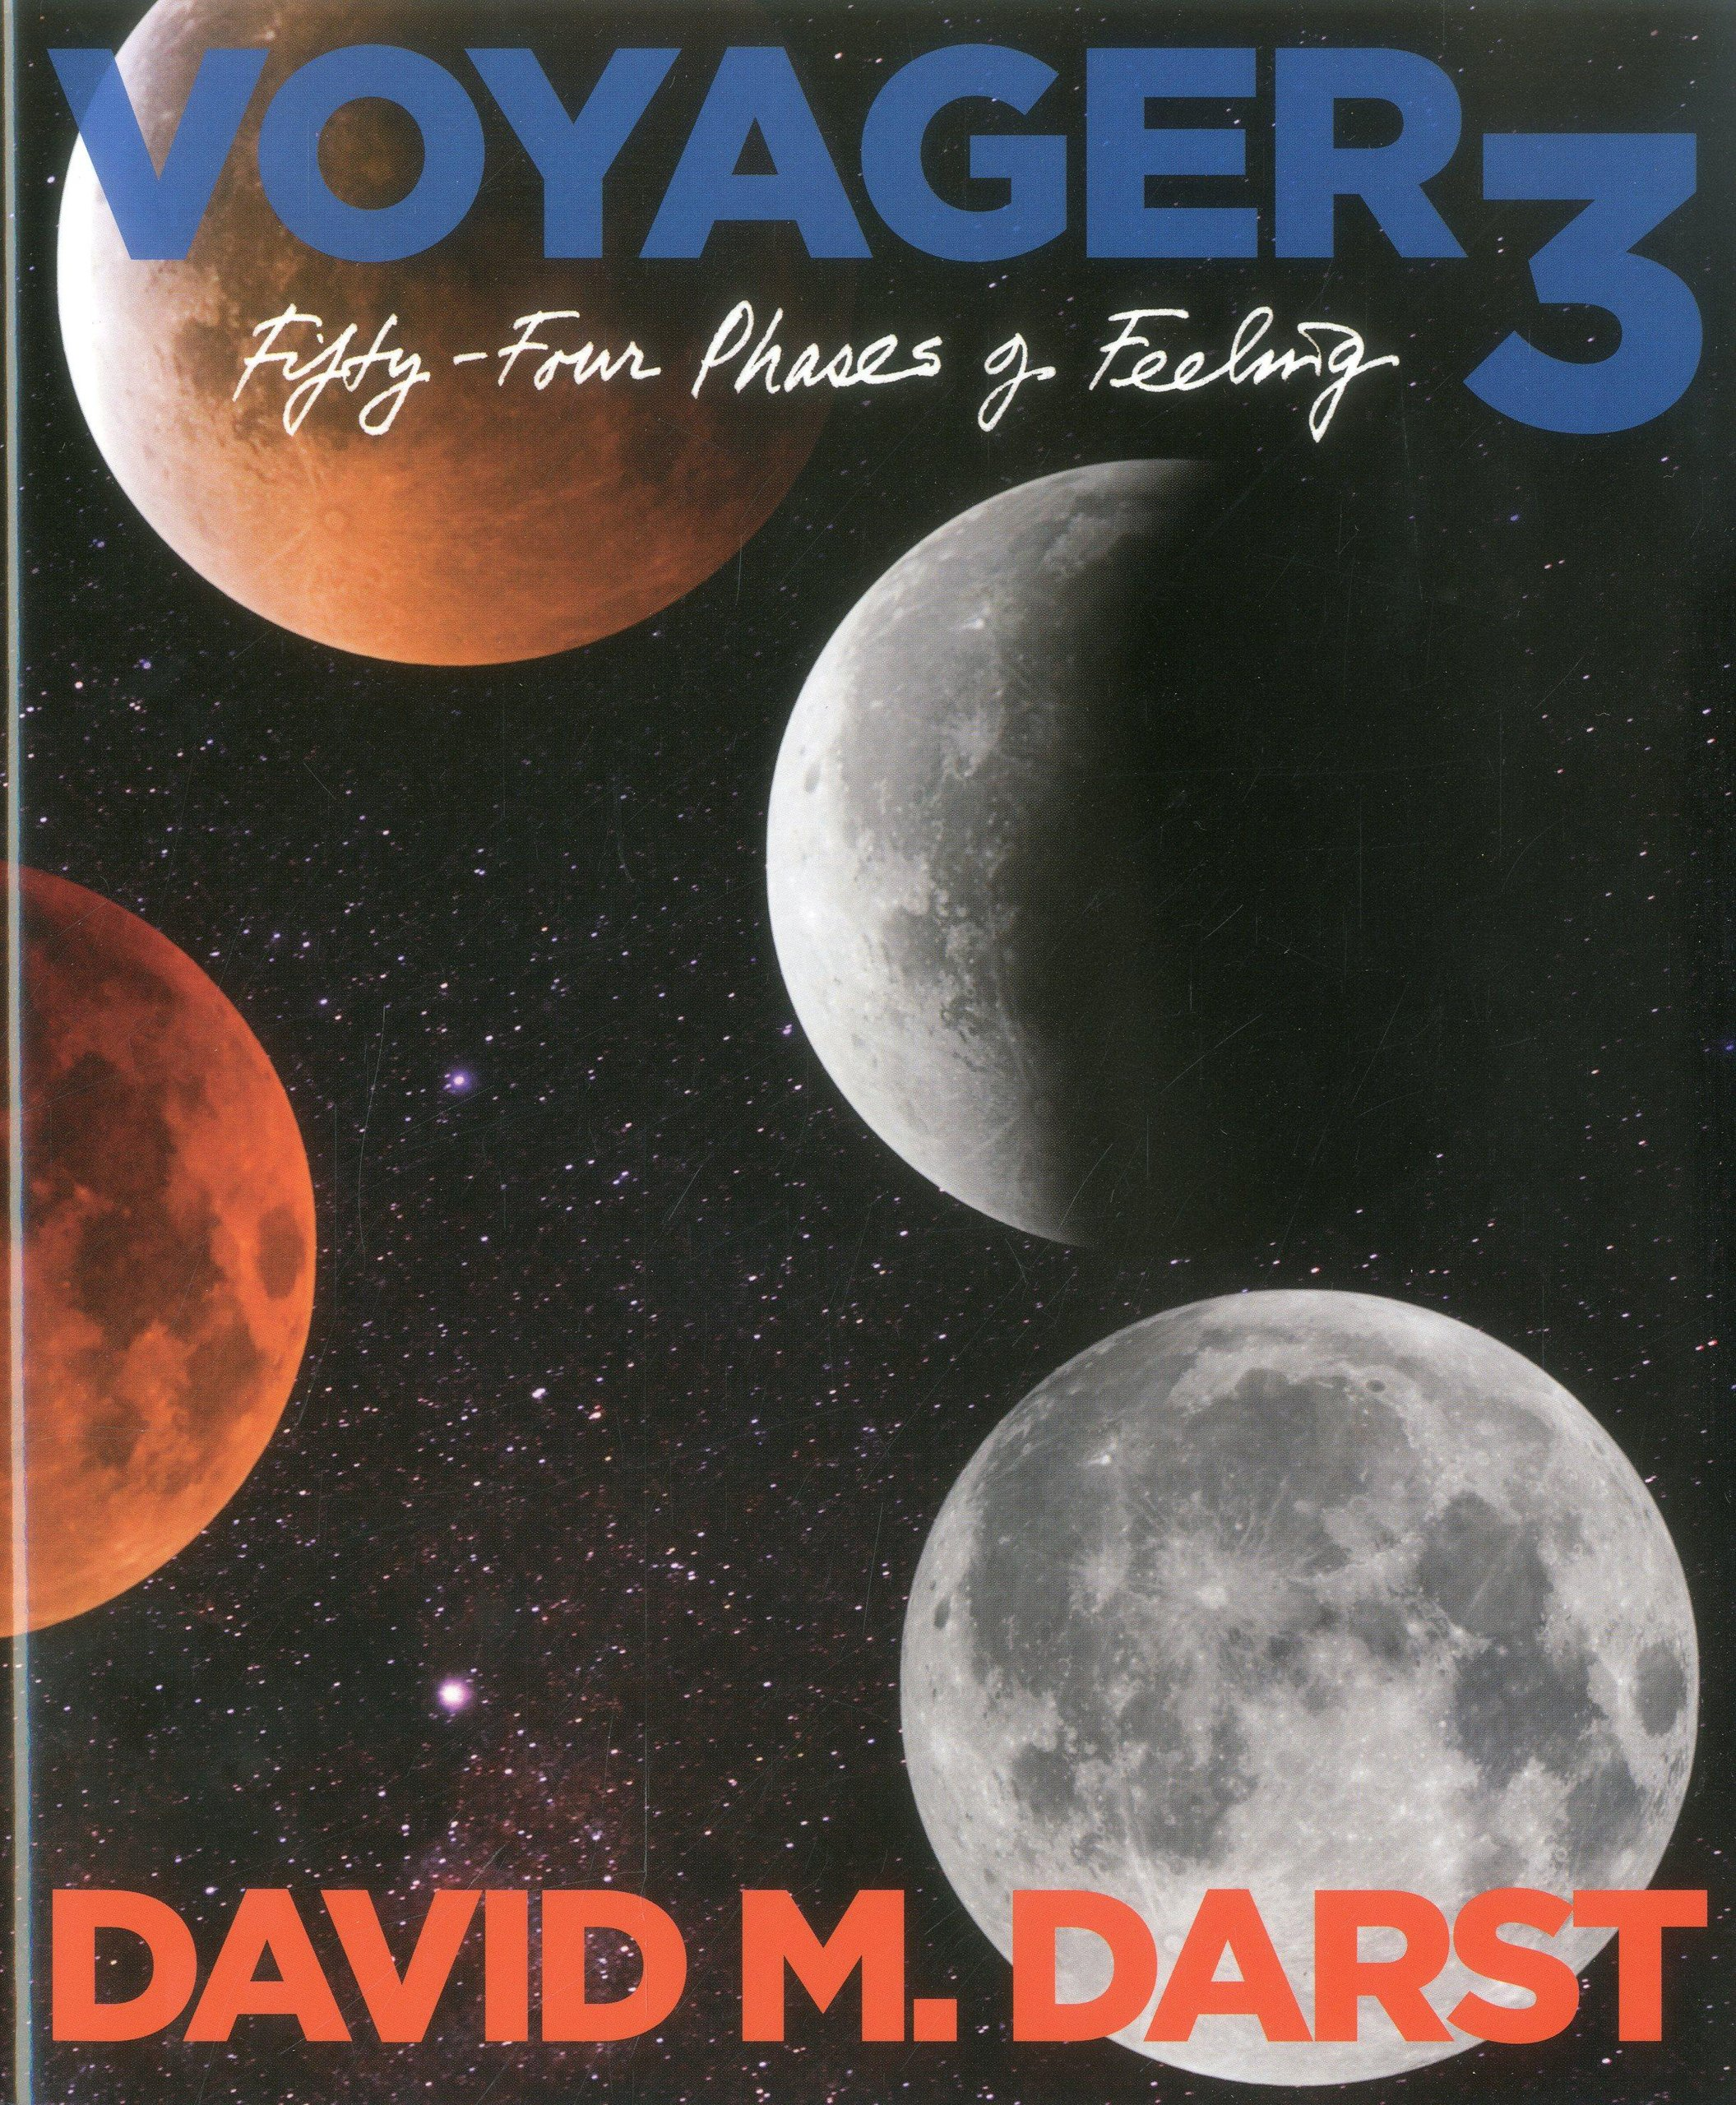 Voyager 3: Fifty Four Phases of Feeling pdf